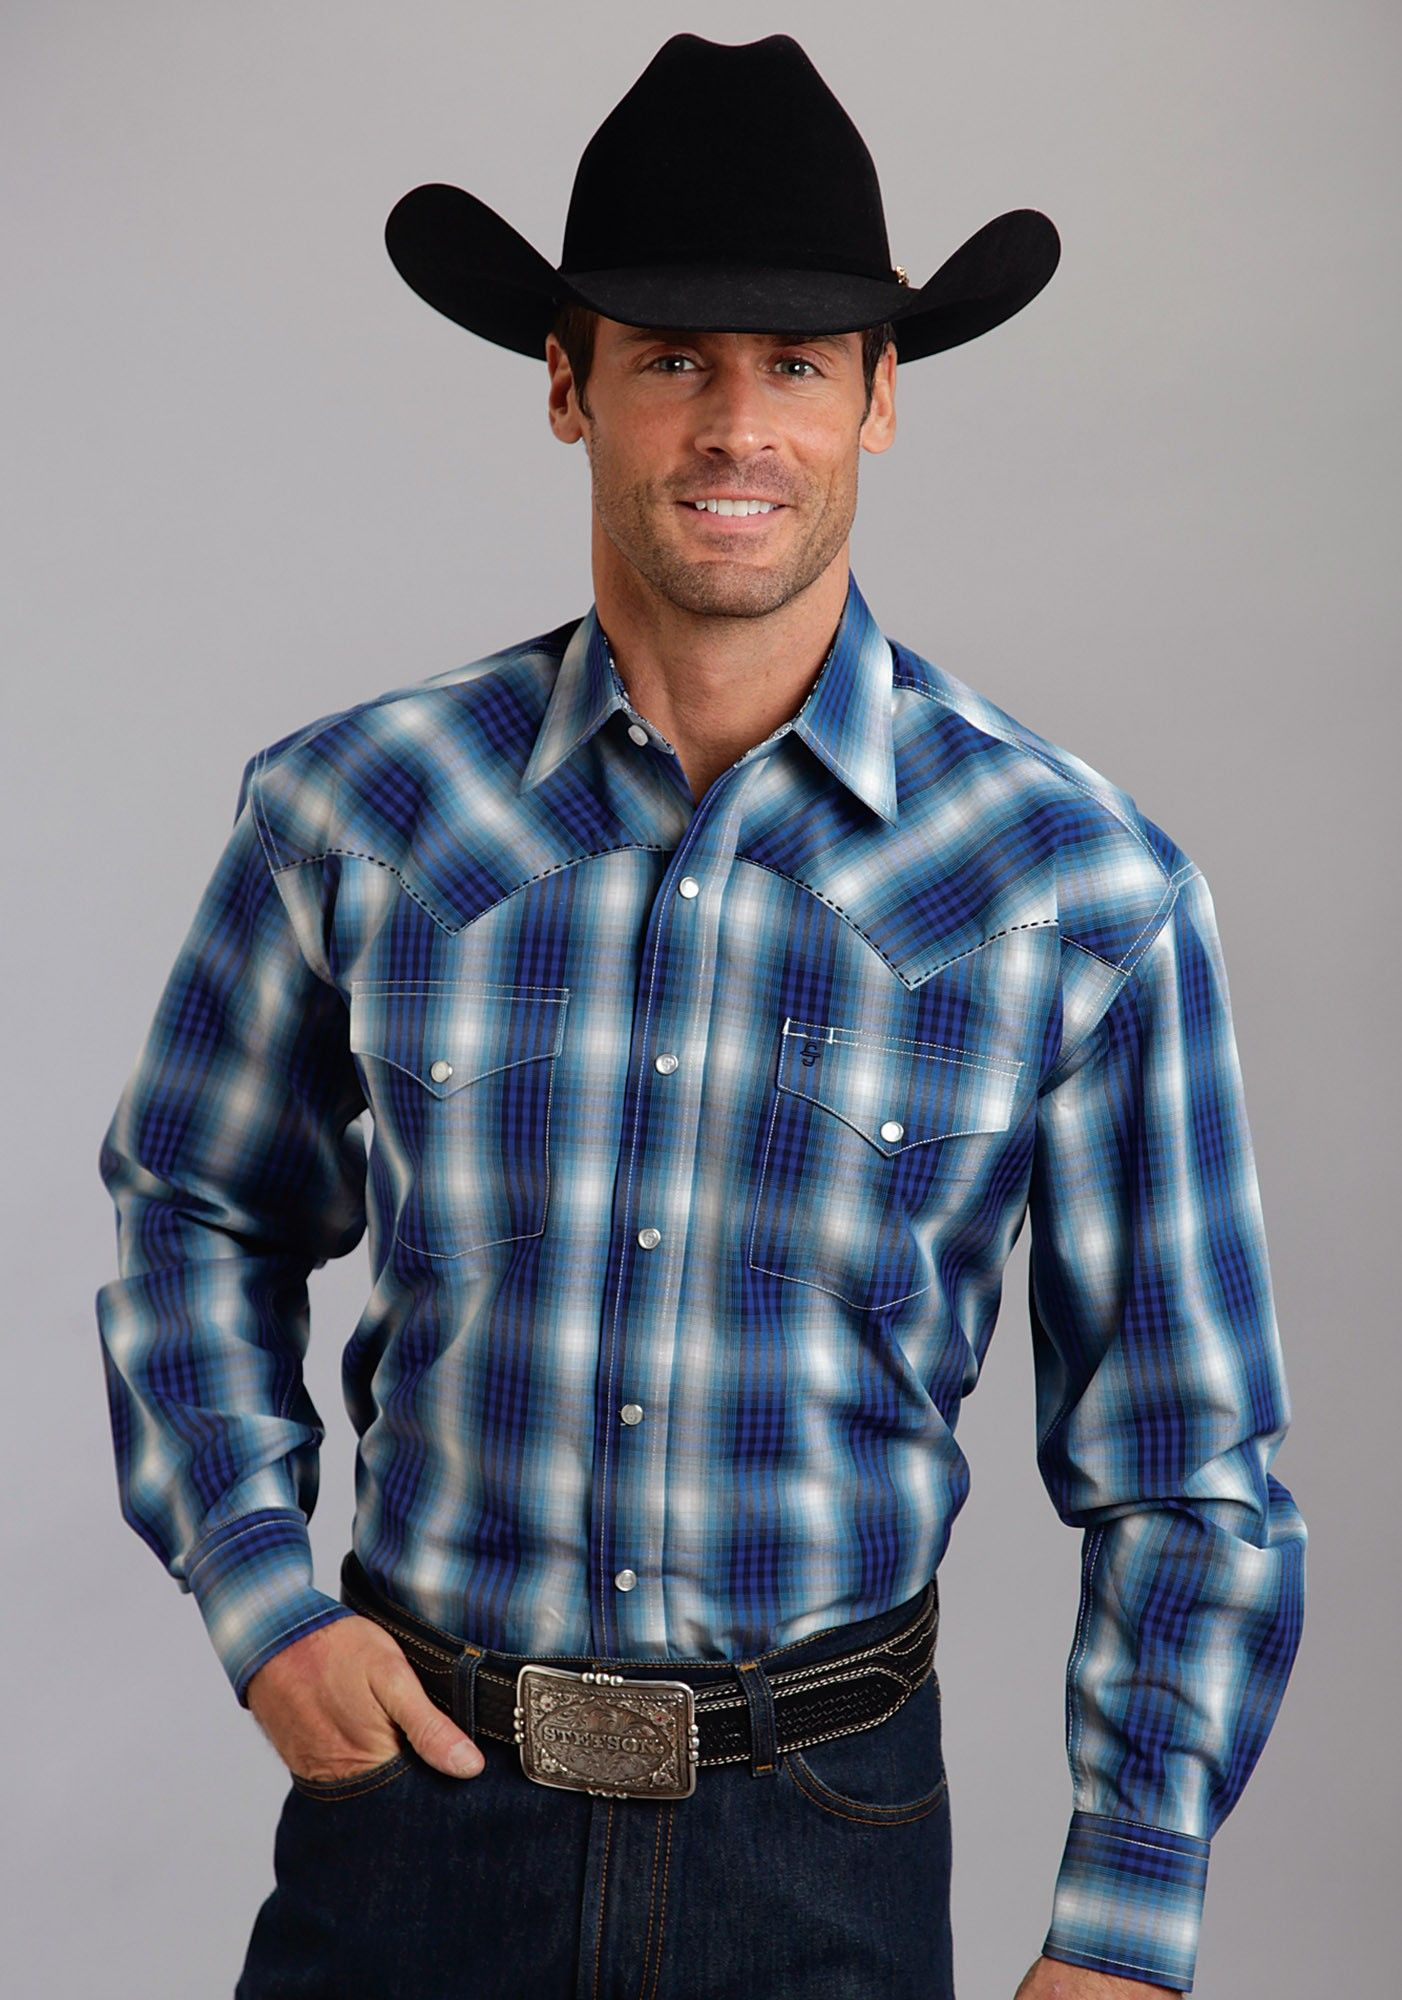 Stetson Mens Cowboy Shirt - Cripple Creek | Rock Wear | Pinterest ...